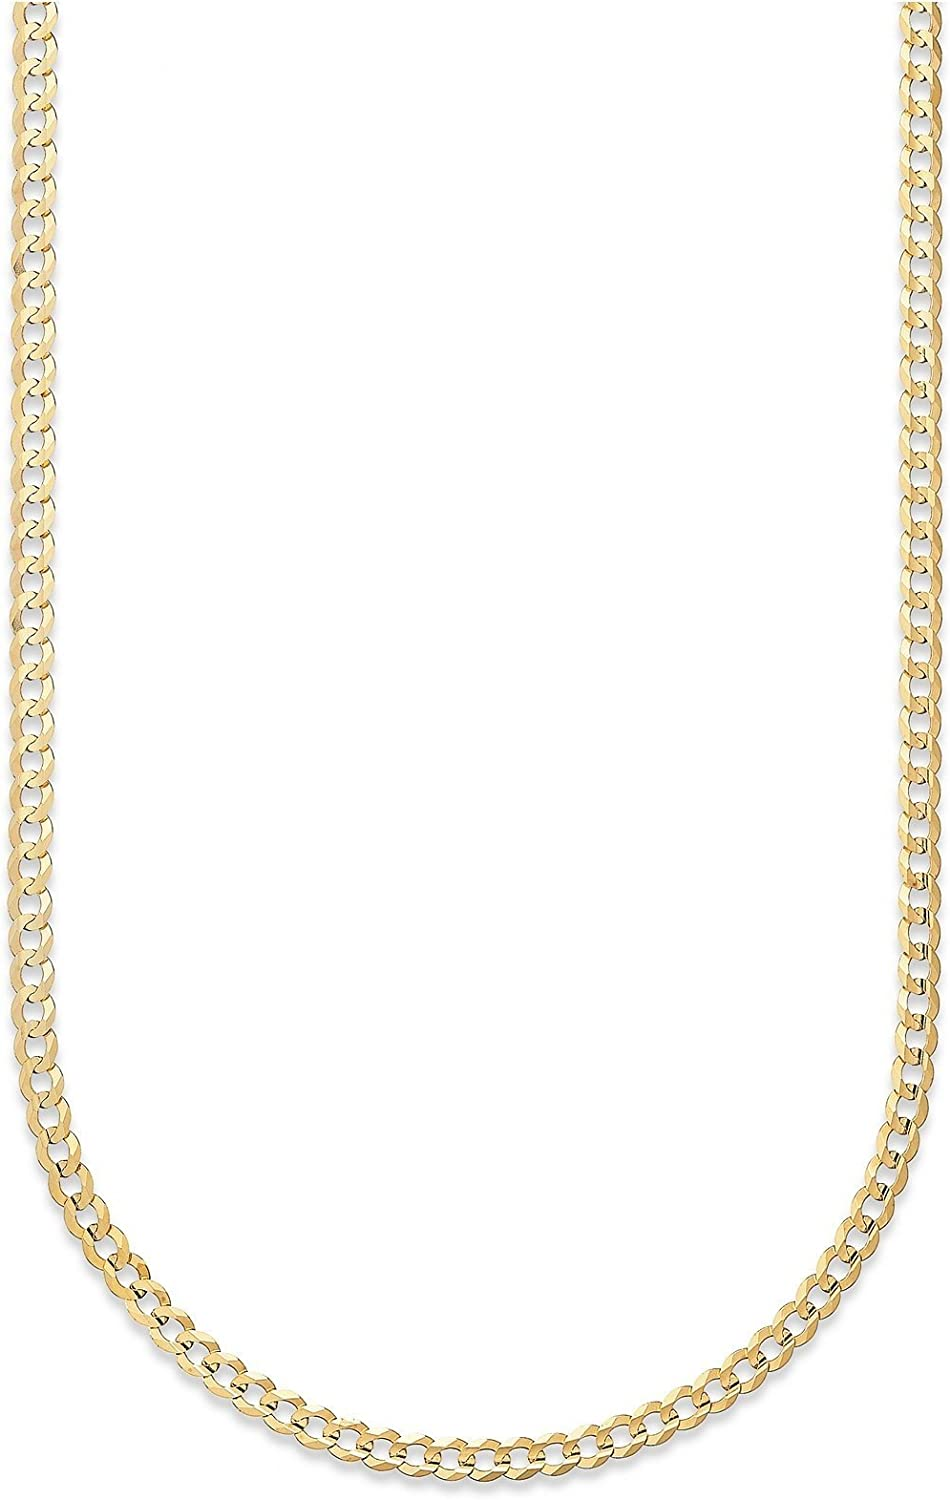 18K Yellow Gold 3.5MM, 5MM, or 6.5MM Cuban Curb Link Chain Necklaces or Bracelets- Made in Italy-18 Karat